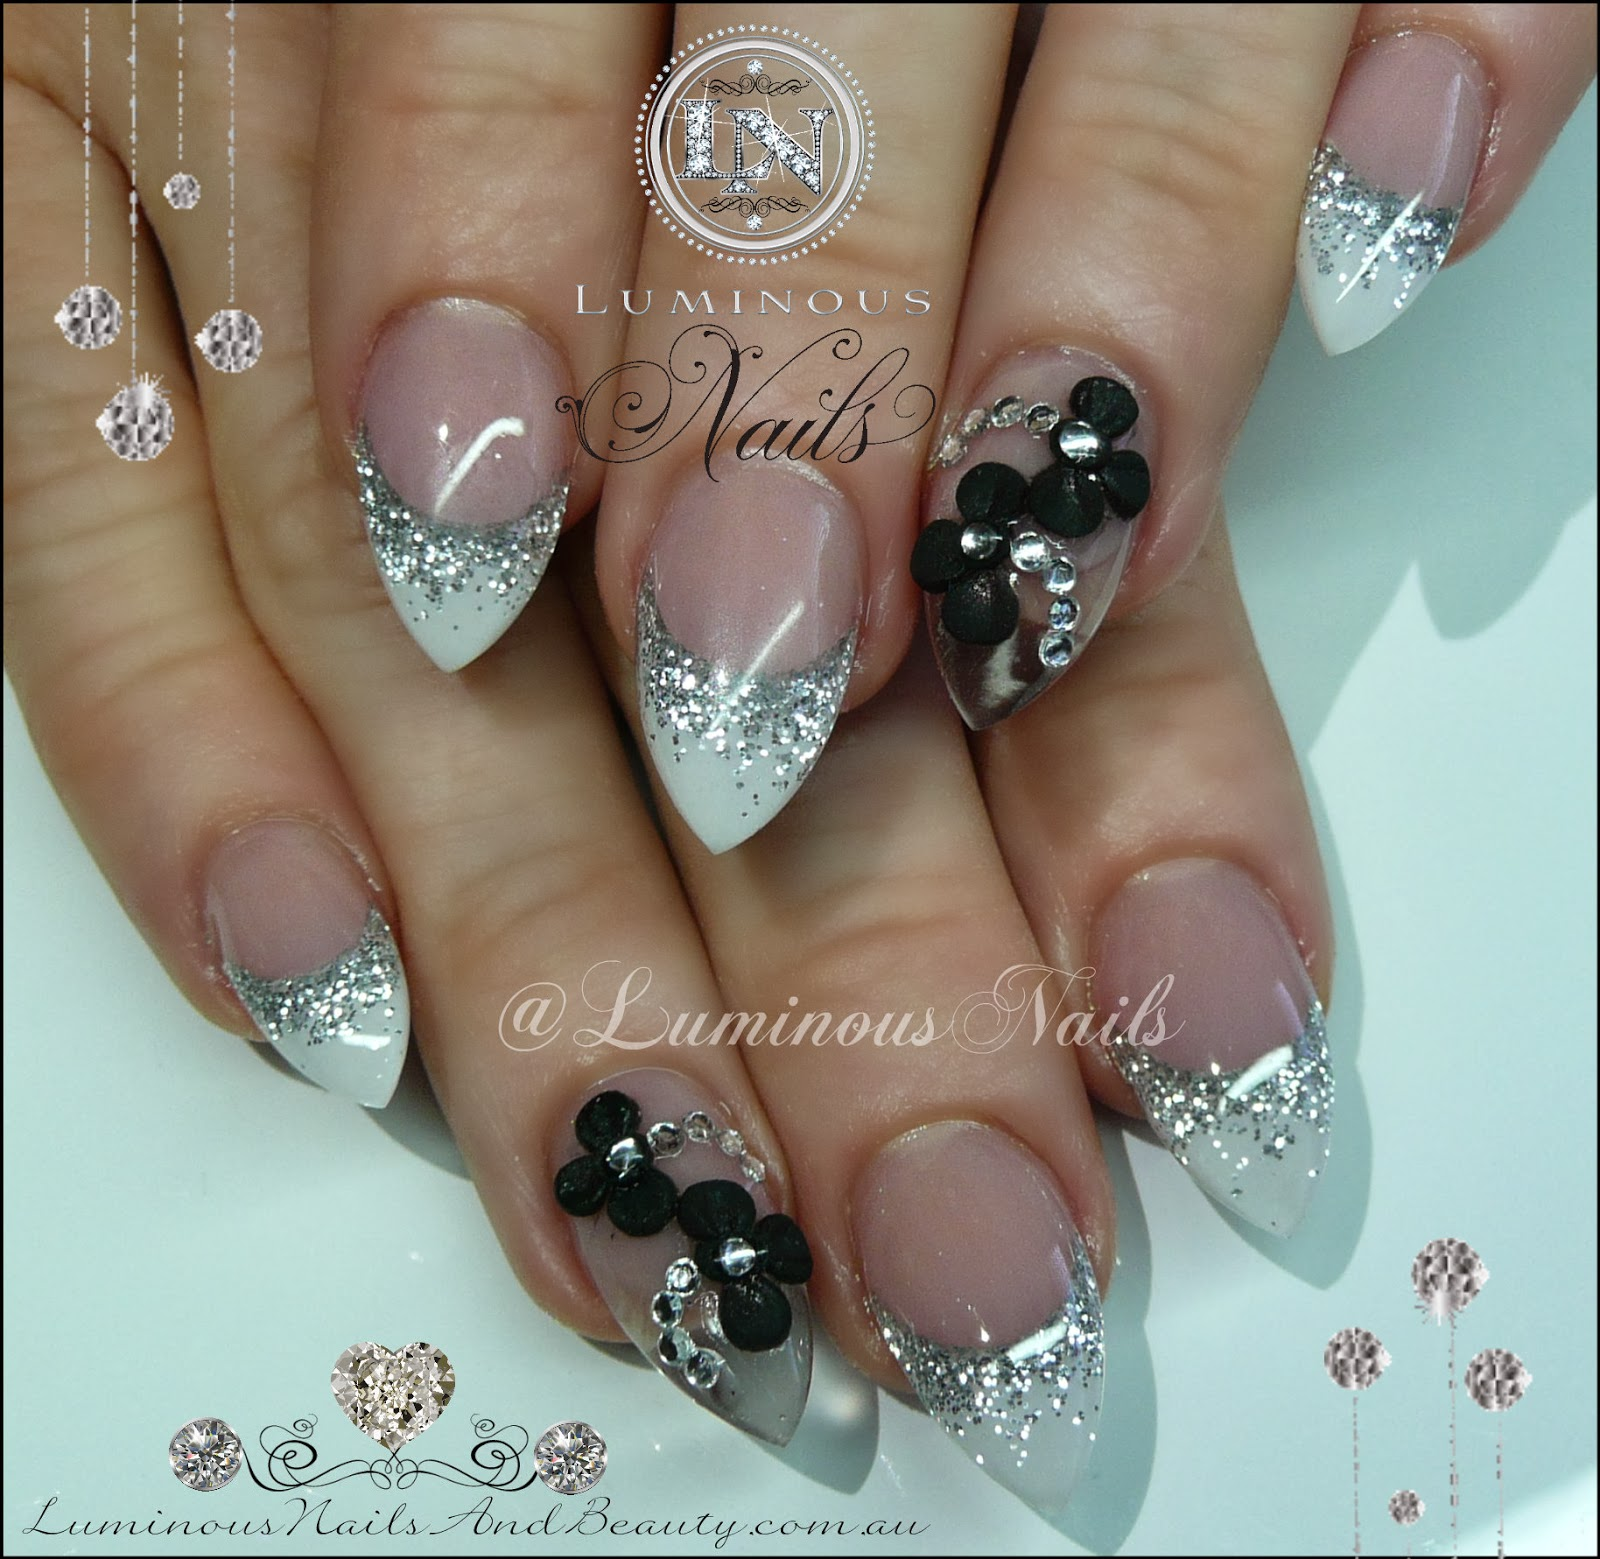 NailArt 101 Nail Design Coffin